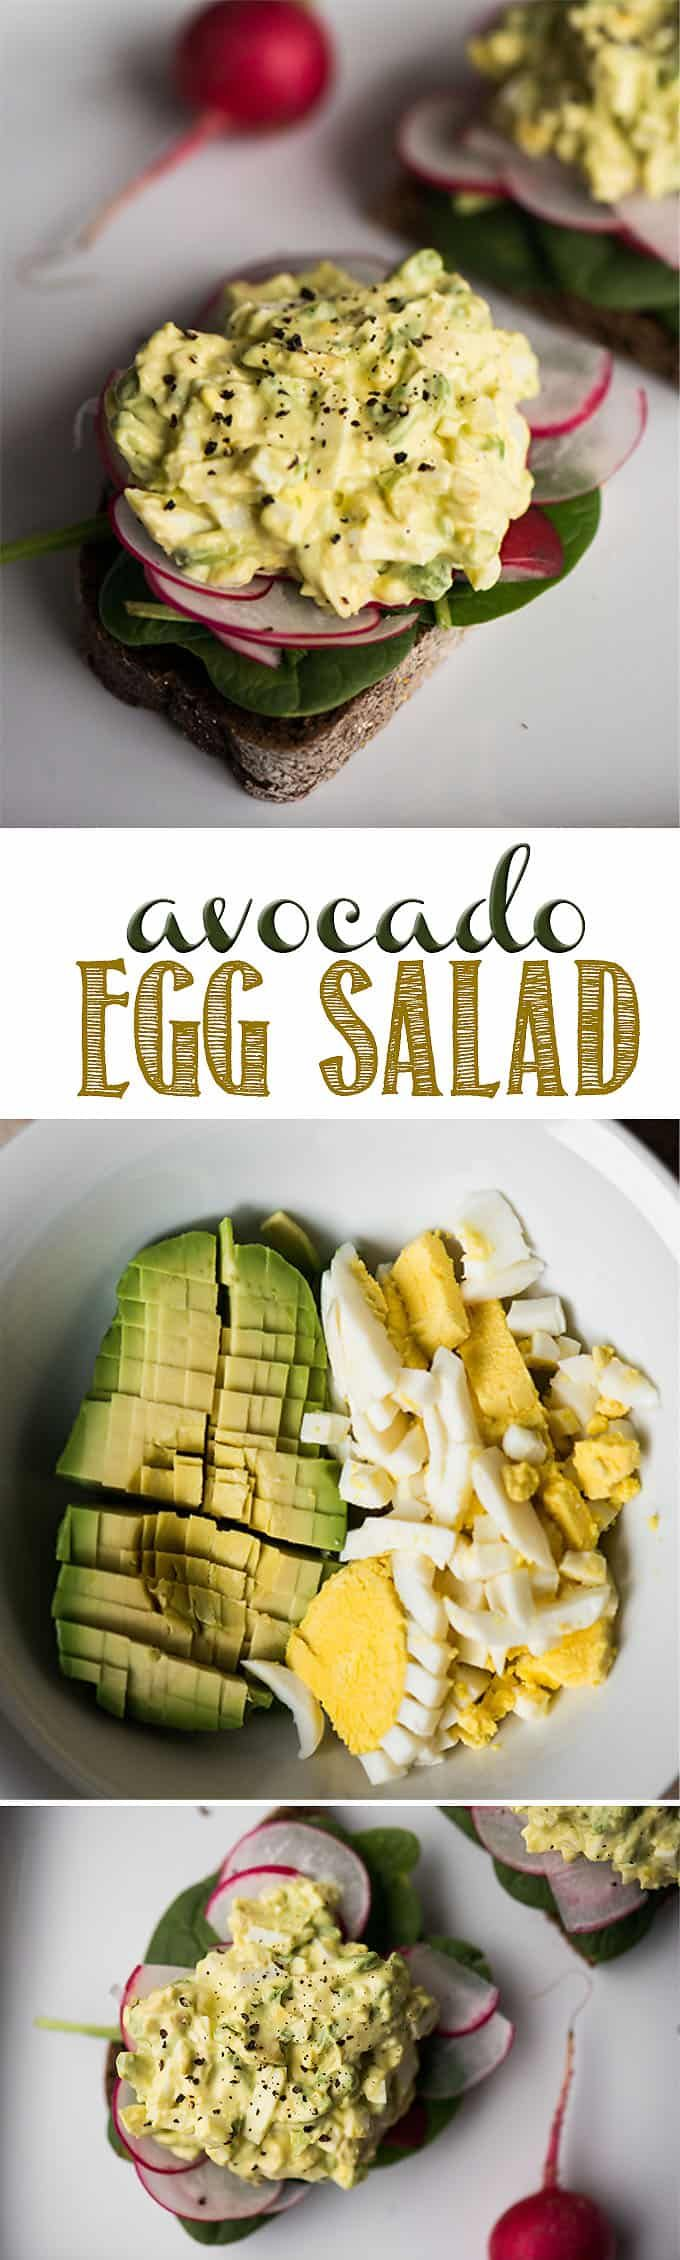 Avocado Egg Salad combines creamy mashed avocado with traditional egg salad for a delicious quick and easy lunch. If you love avocado on toast, but also love the flavor of egg salad, then this recipe is for you. Make a big batch and have lunch ready to go for the whole week! #avocado #eggsalad #avocadoeggsalad